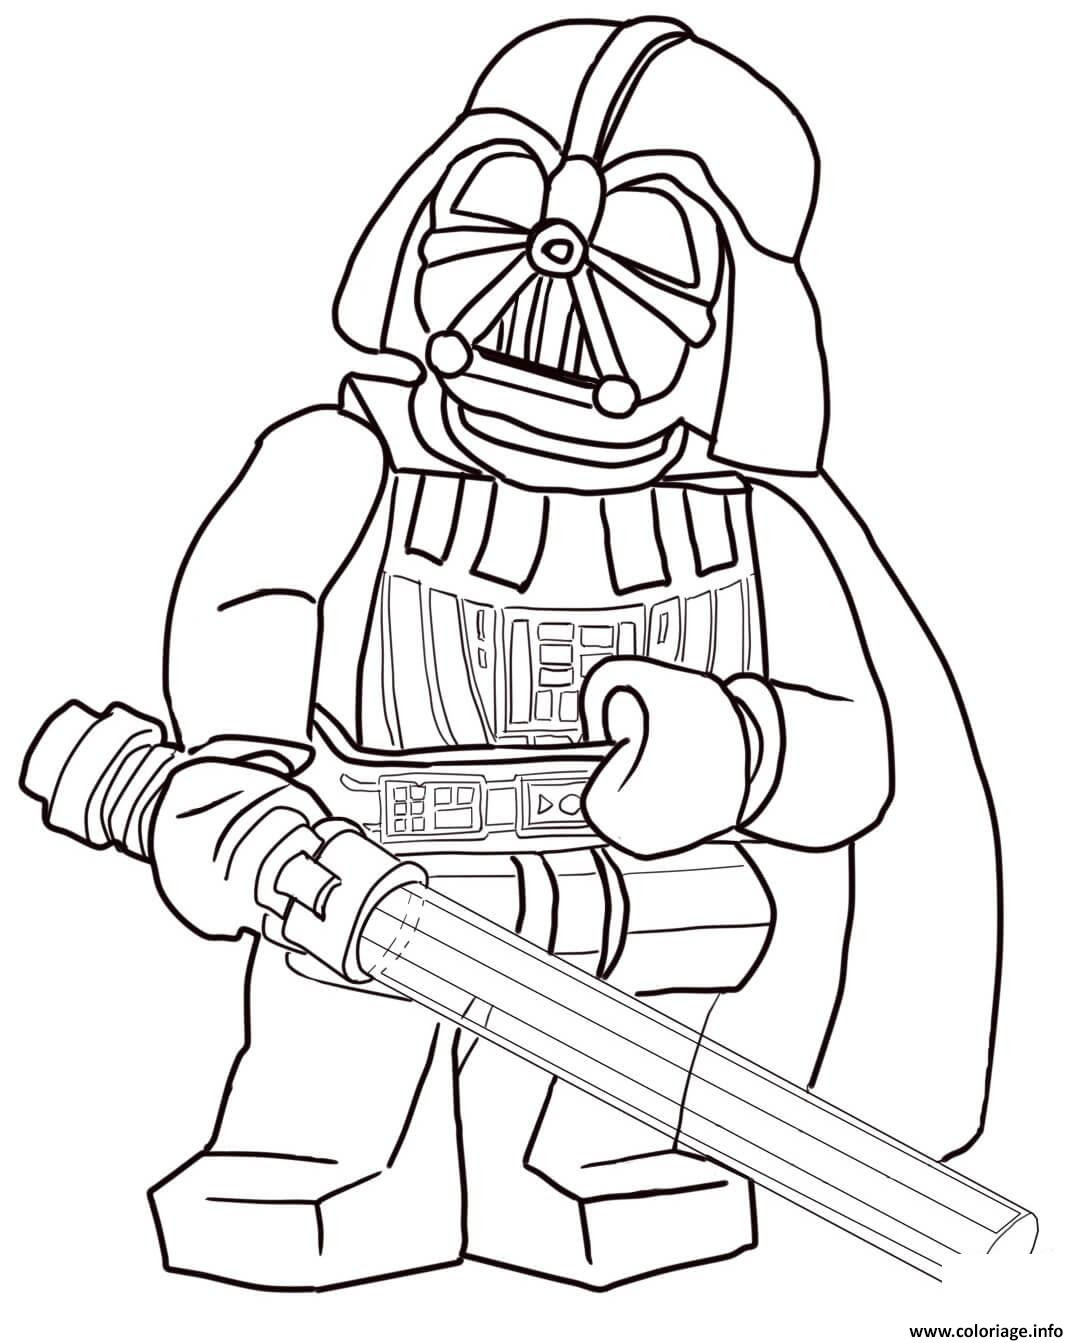 Coloriage Lego Star Wars Darth Vader Jecoloriecom